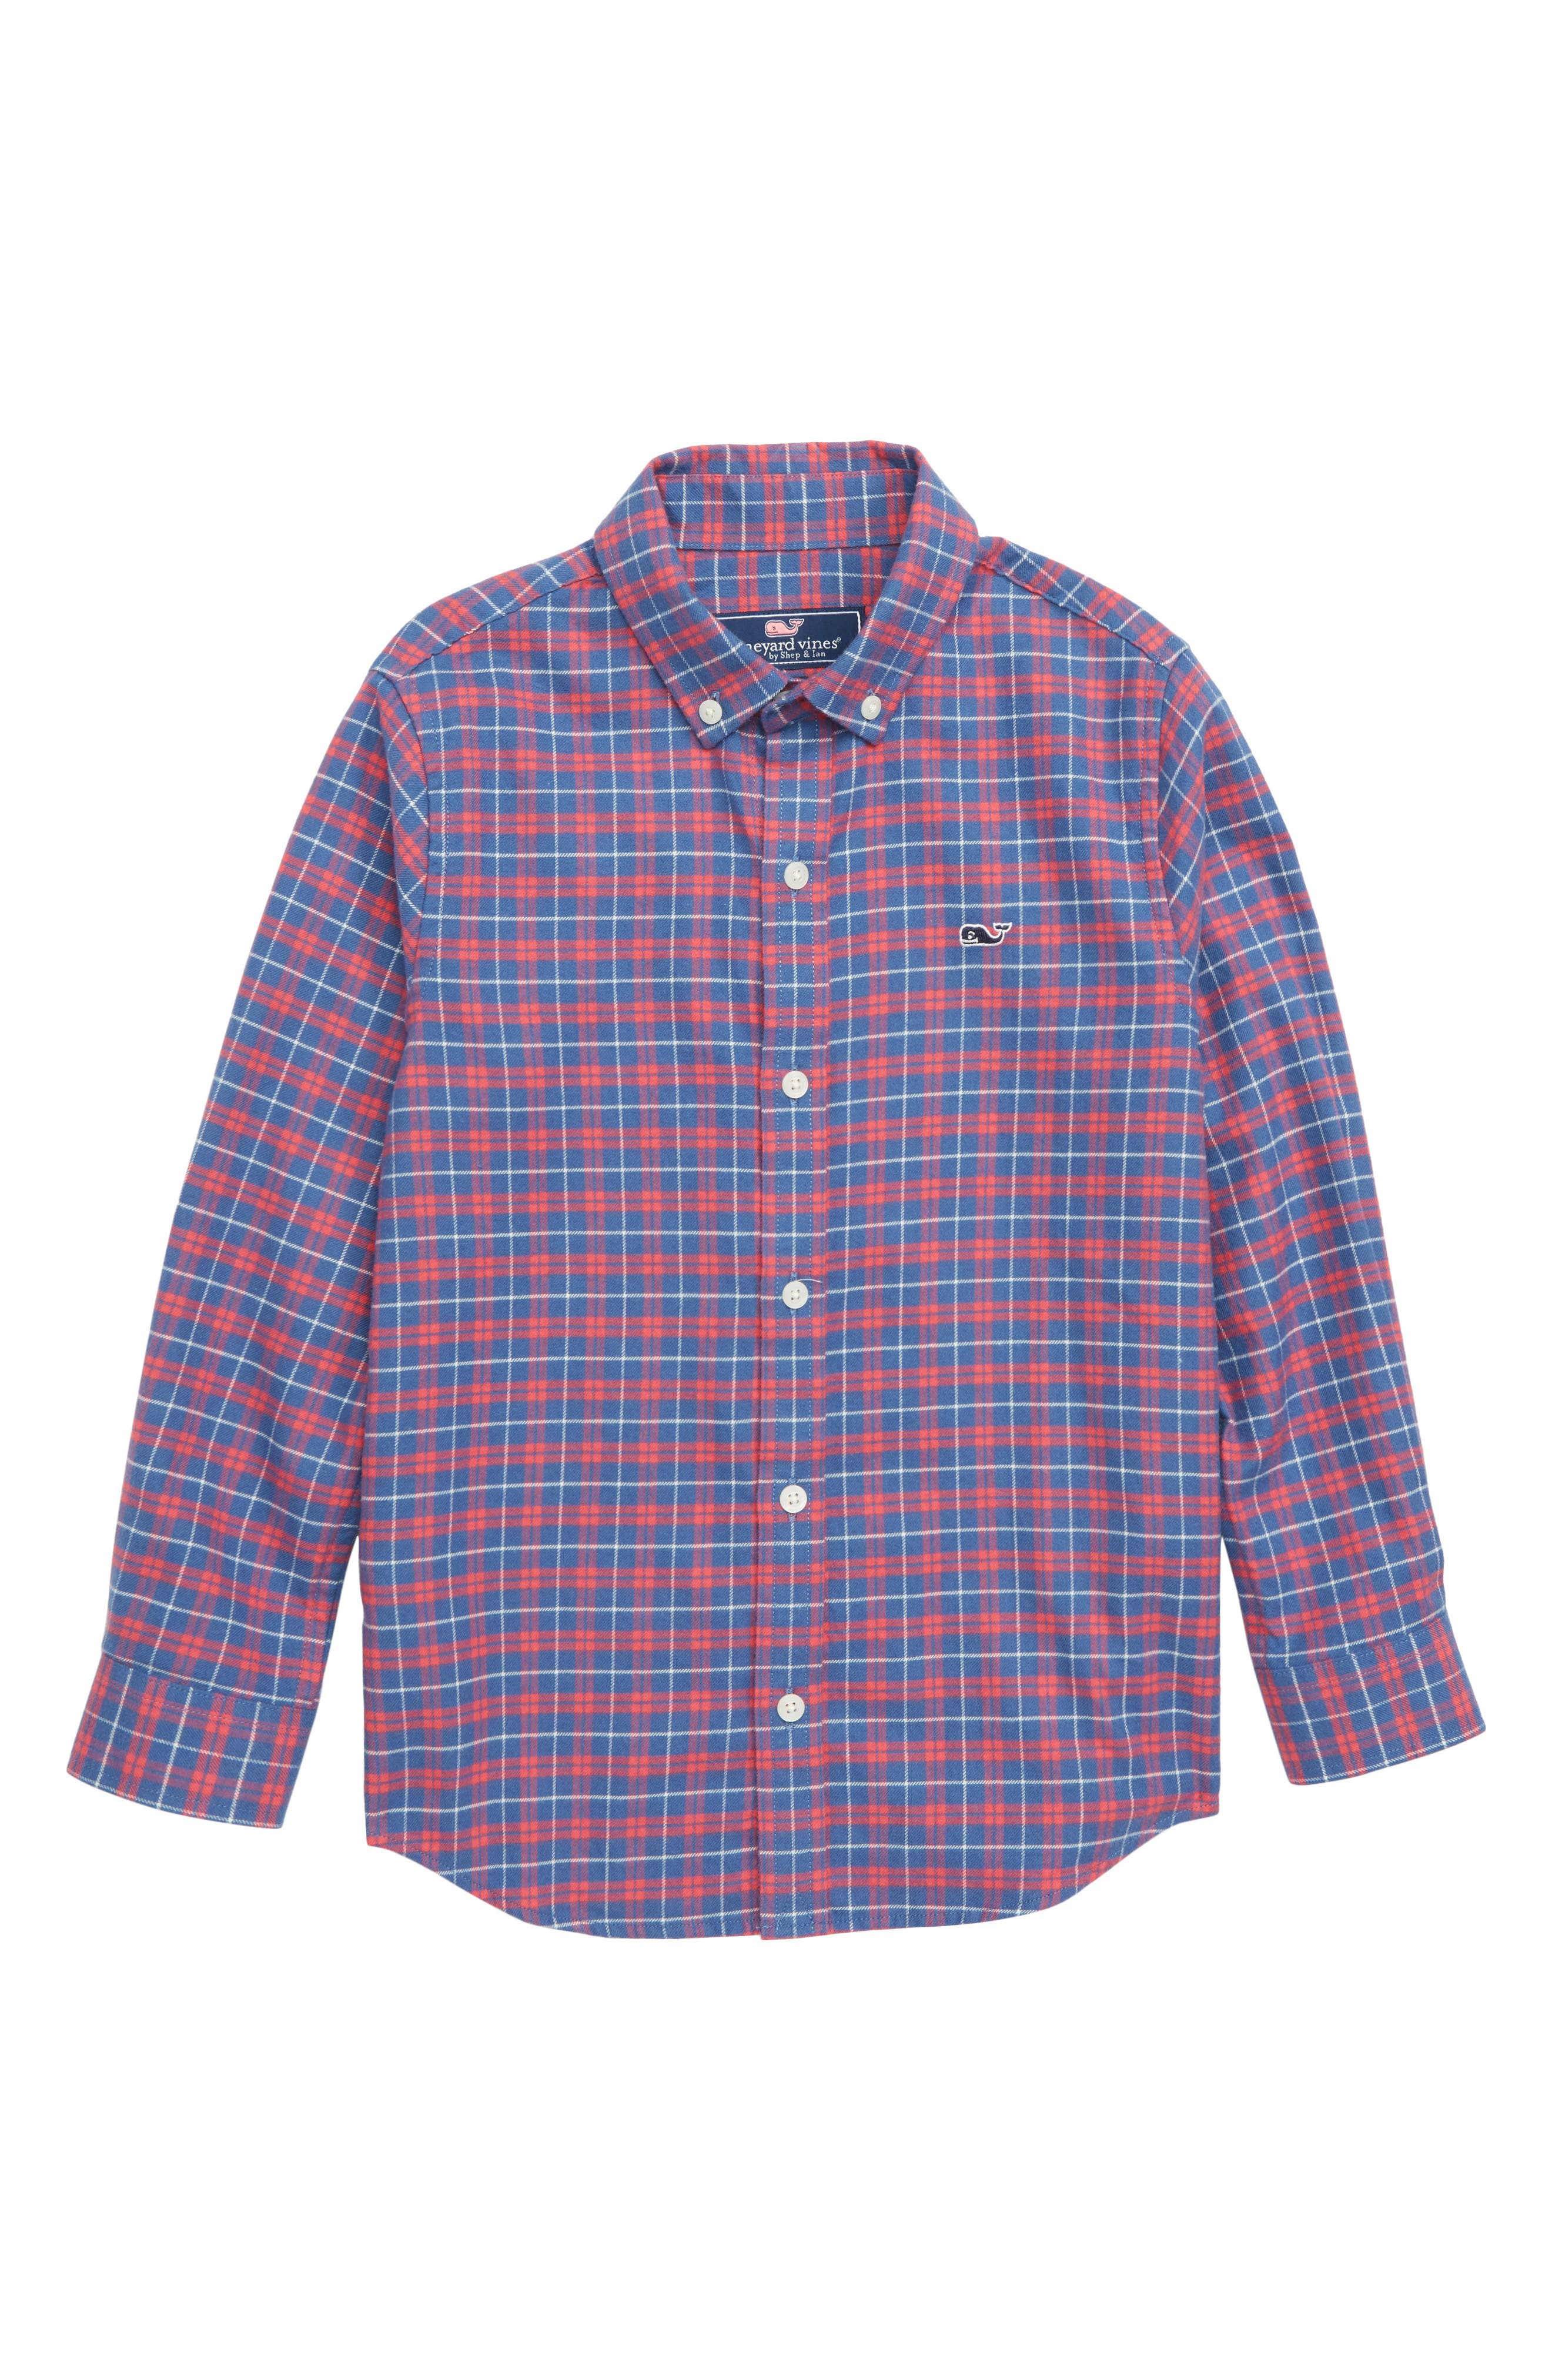 Flannel Whale Shirt,                         Main,                         color, 461